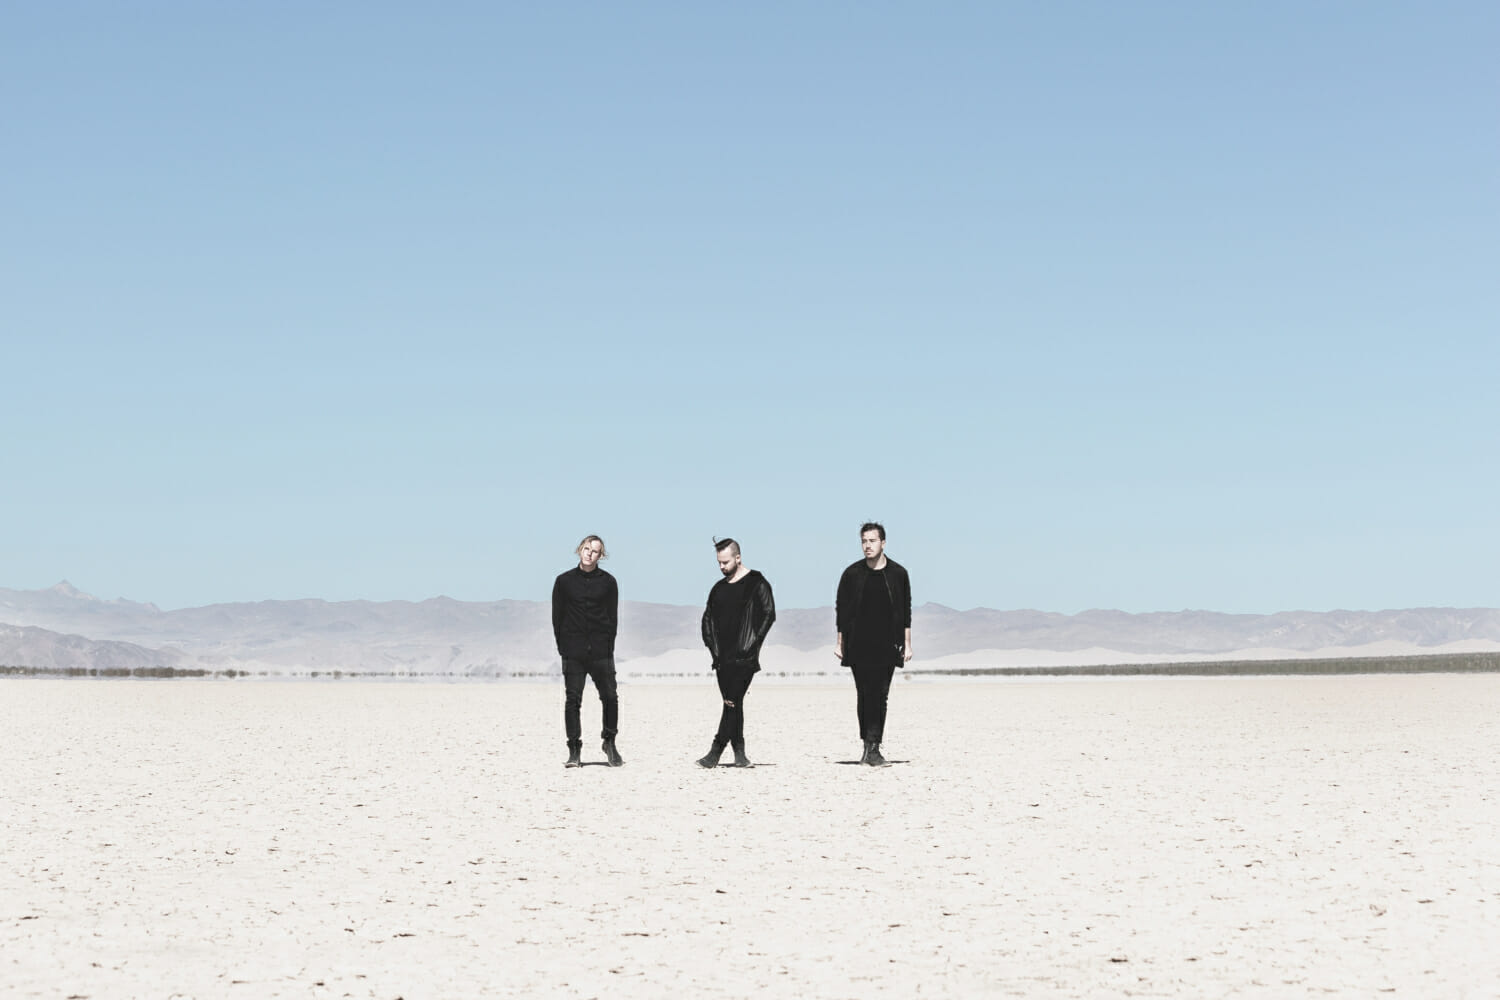 RÜFÜS DU SOL effect desert drama in 'No Place' music video [Watch]RUFUS PressShot LeFawnhawk